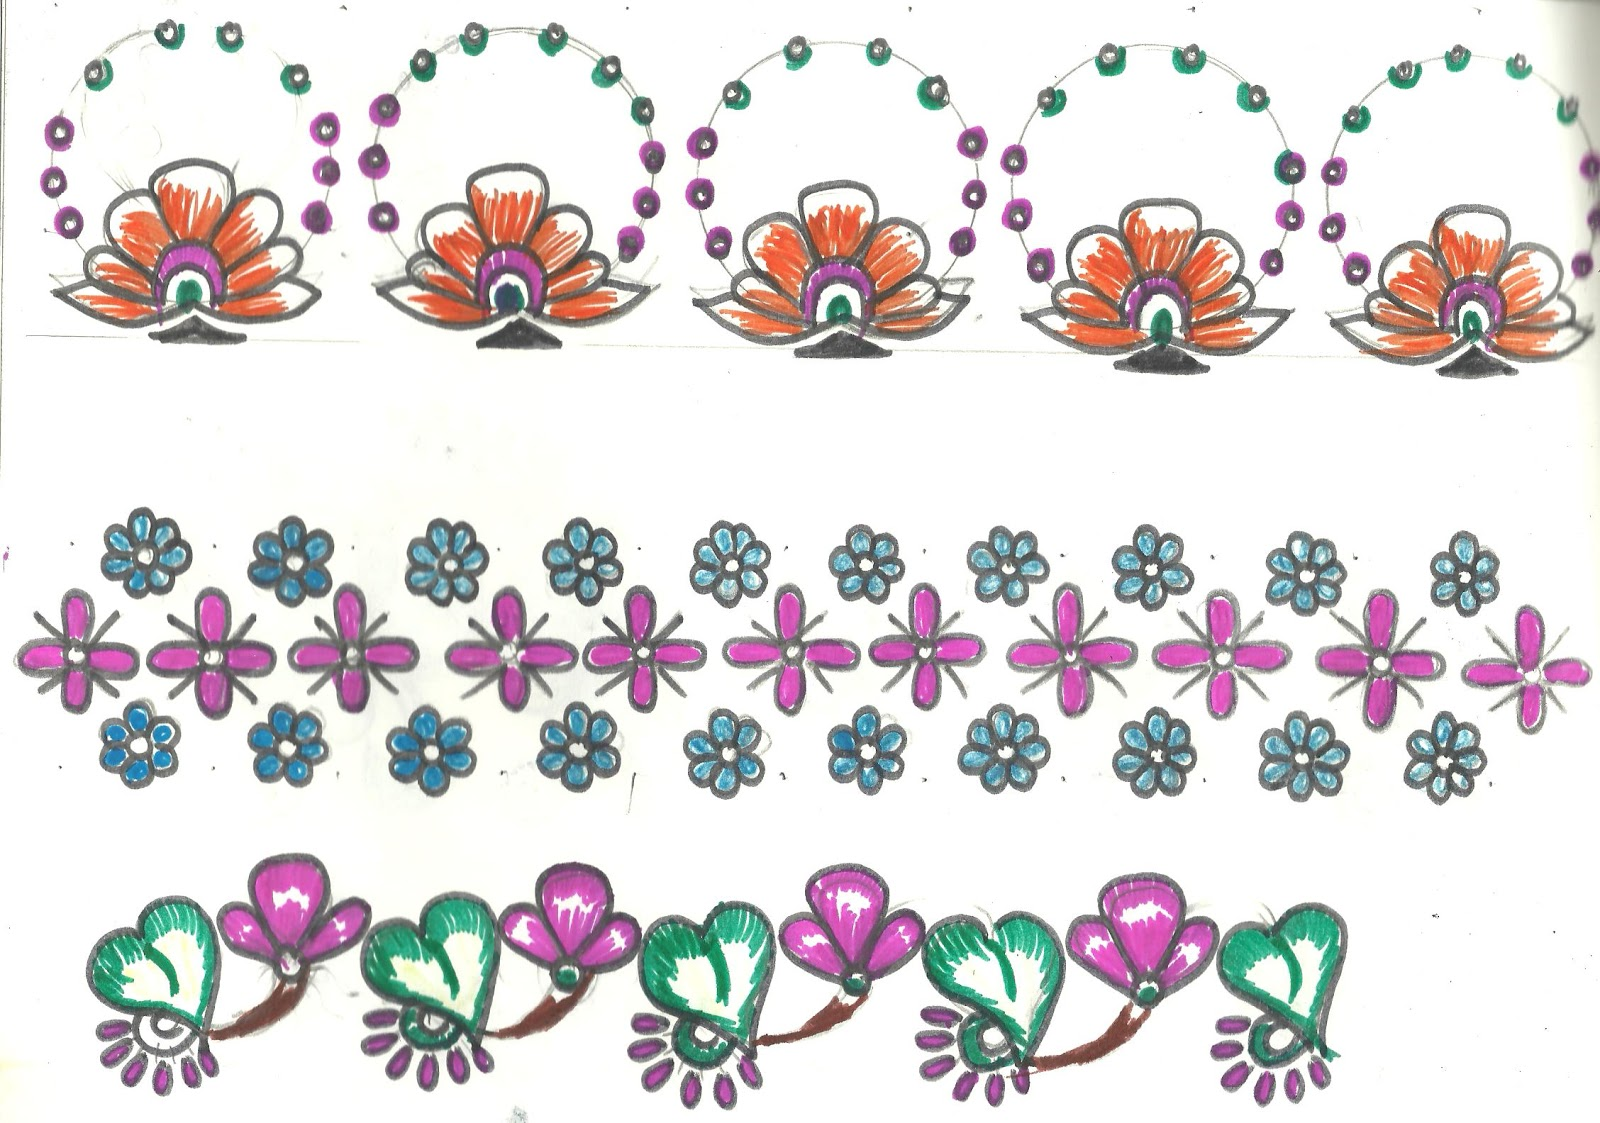 Embroidery Designs for Sarees Border http://artcraftetc.blogspot.com/2012/04/border-designs-for-saree-table-cloth.html